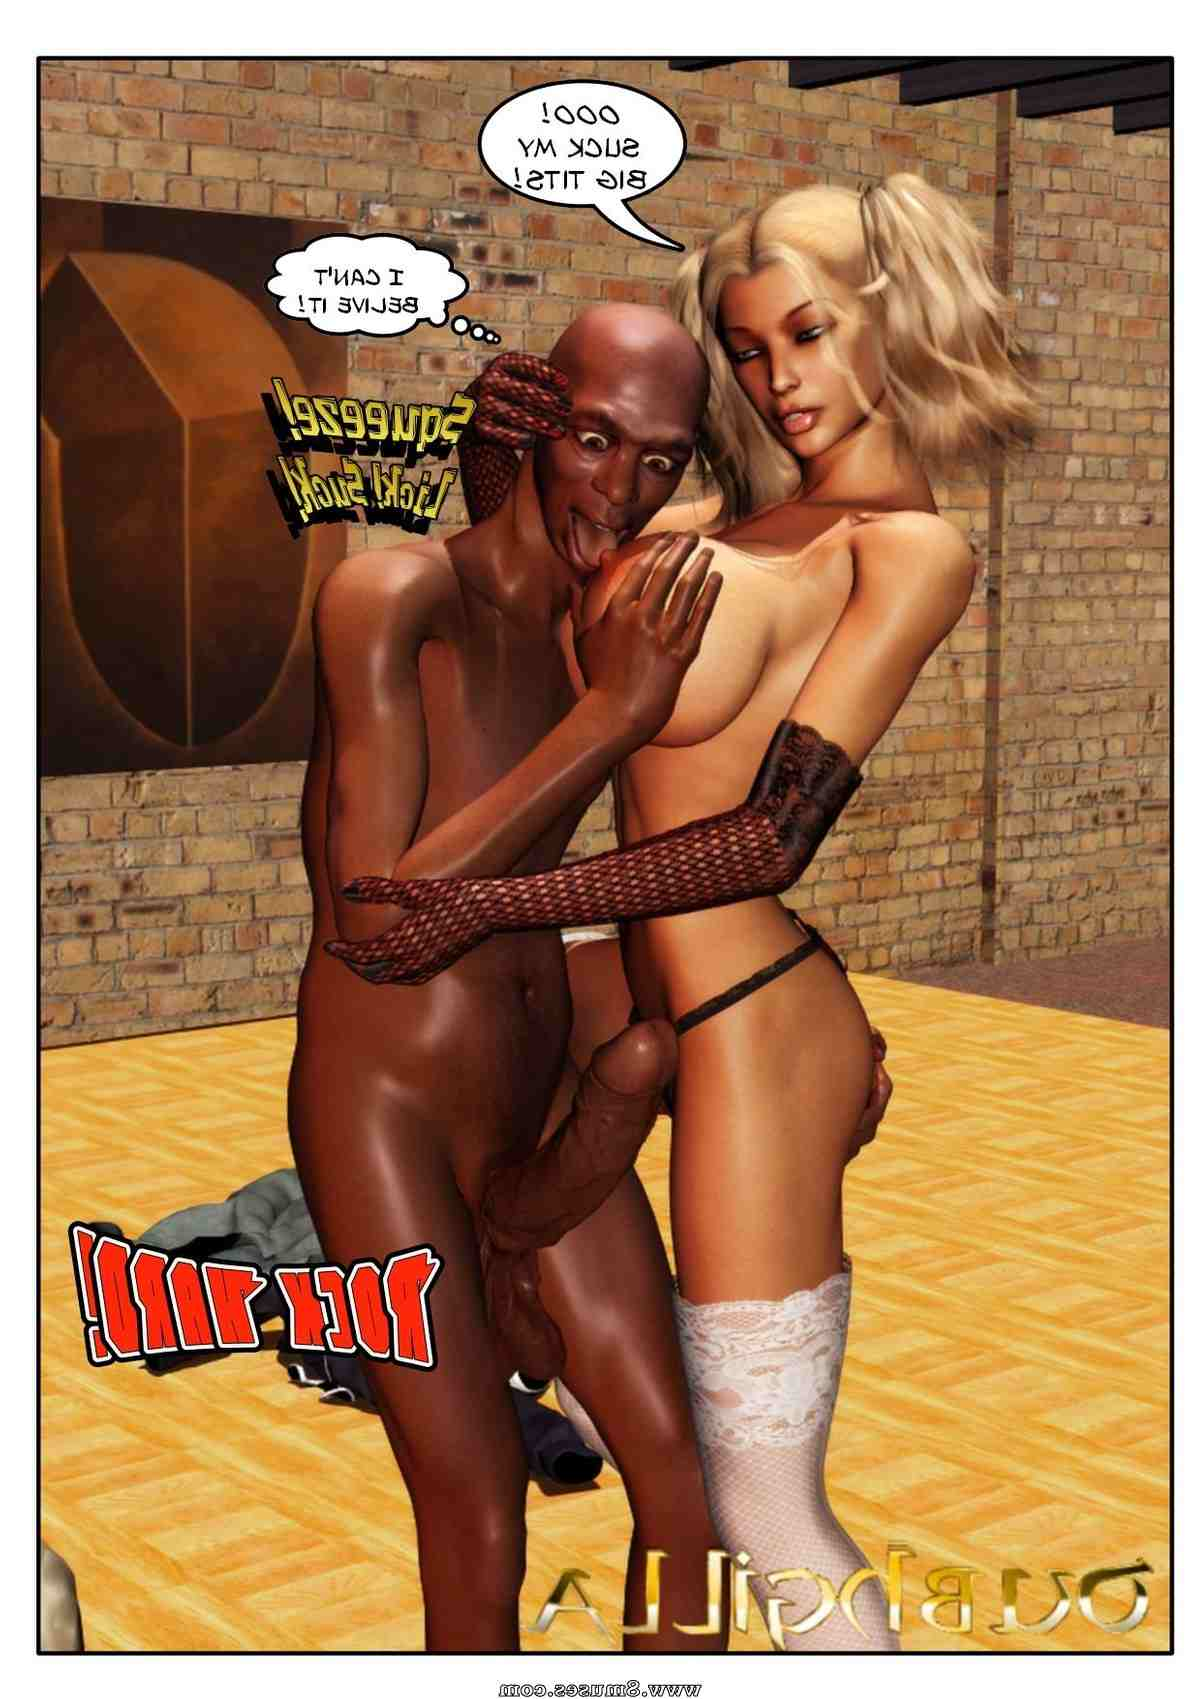 Blacknwhitecomics_com-Comix/BlackonWhite3D/Tim-Dia Tim_Dia__8muses_-_Sex_and_Porn_Comics_11.jpg